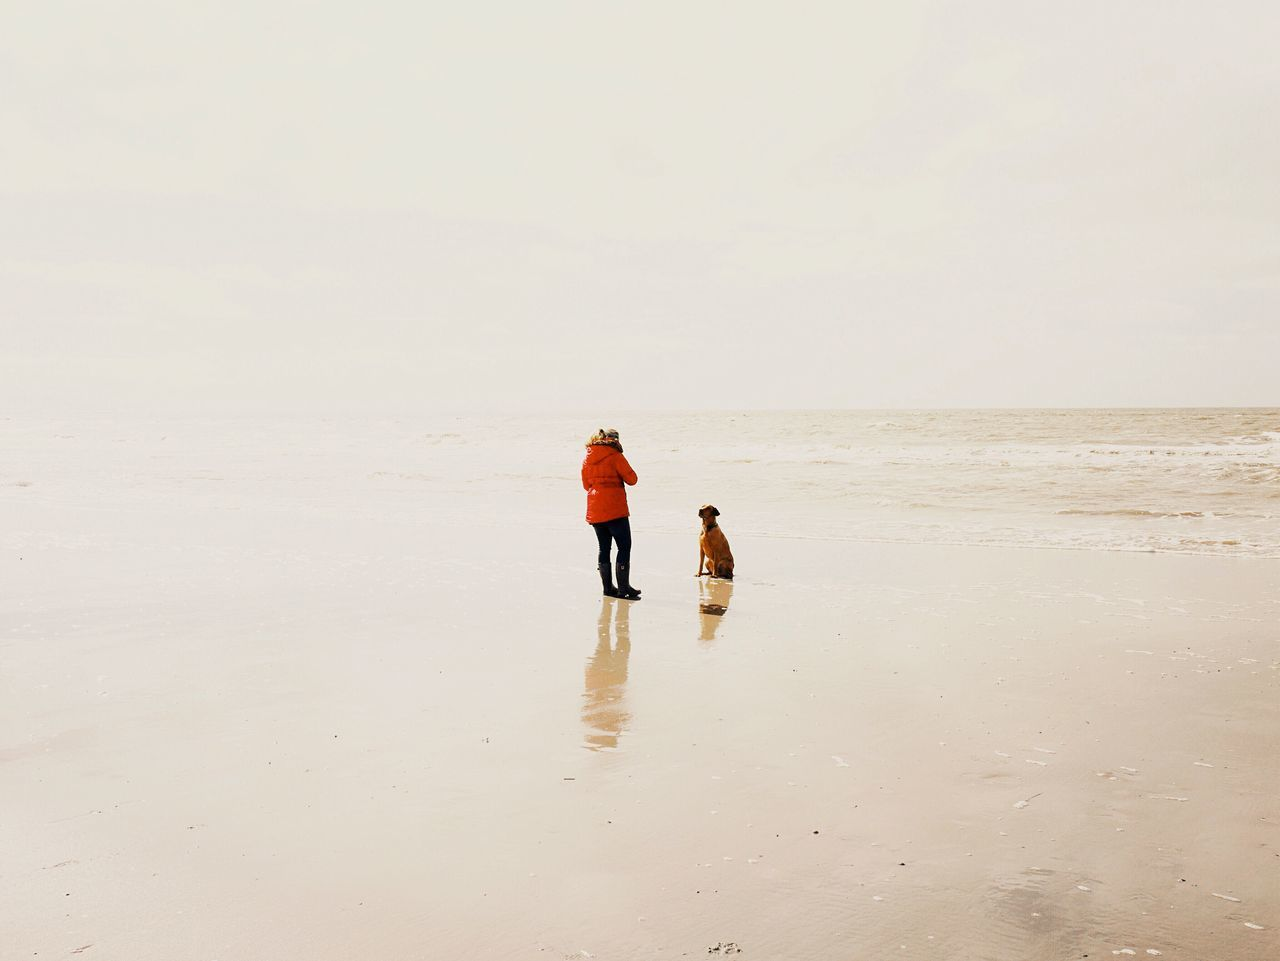 Woman with her dog , Sankt Peter -Ording Let's Go. Together. The Photojournalist - 2015 EyeEm Awards Capture The Moment Freedom Beachphotography Sound Of Life Deceptively Simple Edge Of The World Creative Light And Shadow Perfect Match Picturing Individuality My Best Photo 2015 Adventure Buddies Pastel Power Q Quiet Landscapes With WhiteWall The KIOMI Collection People Of The Oceans 43 Golden Moments On The Way Colour Of Life People And Places Miles Away Long Goodbye The Great Outdoors - 2017 EyeEm Awards